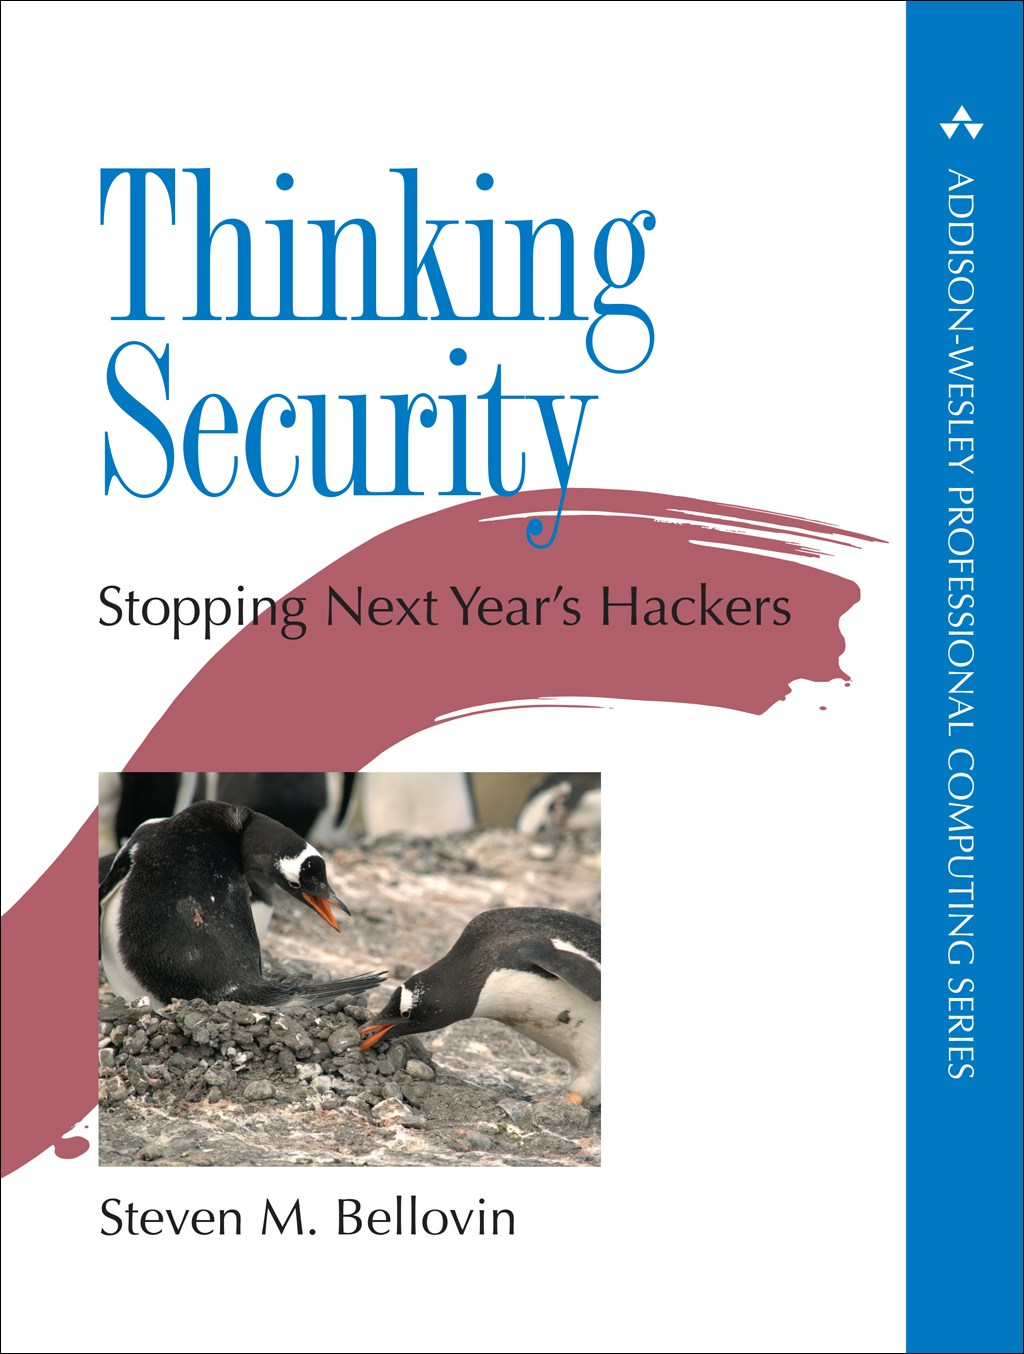 Thinking Security: Stopping Next Year's Hackers